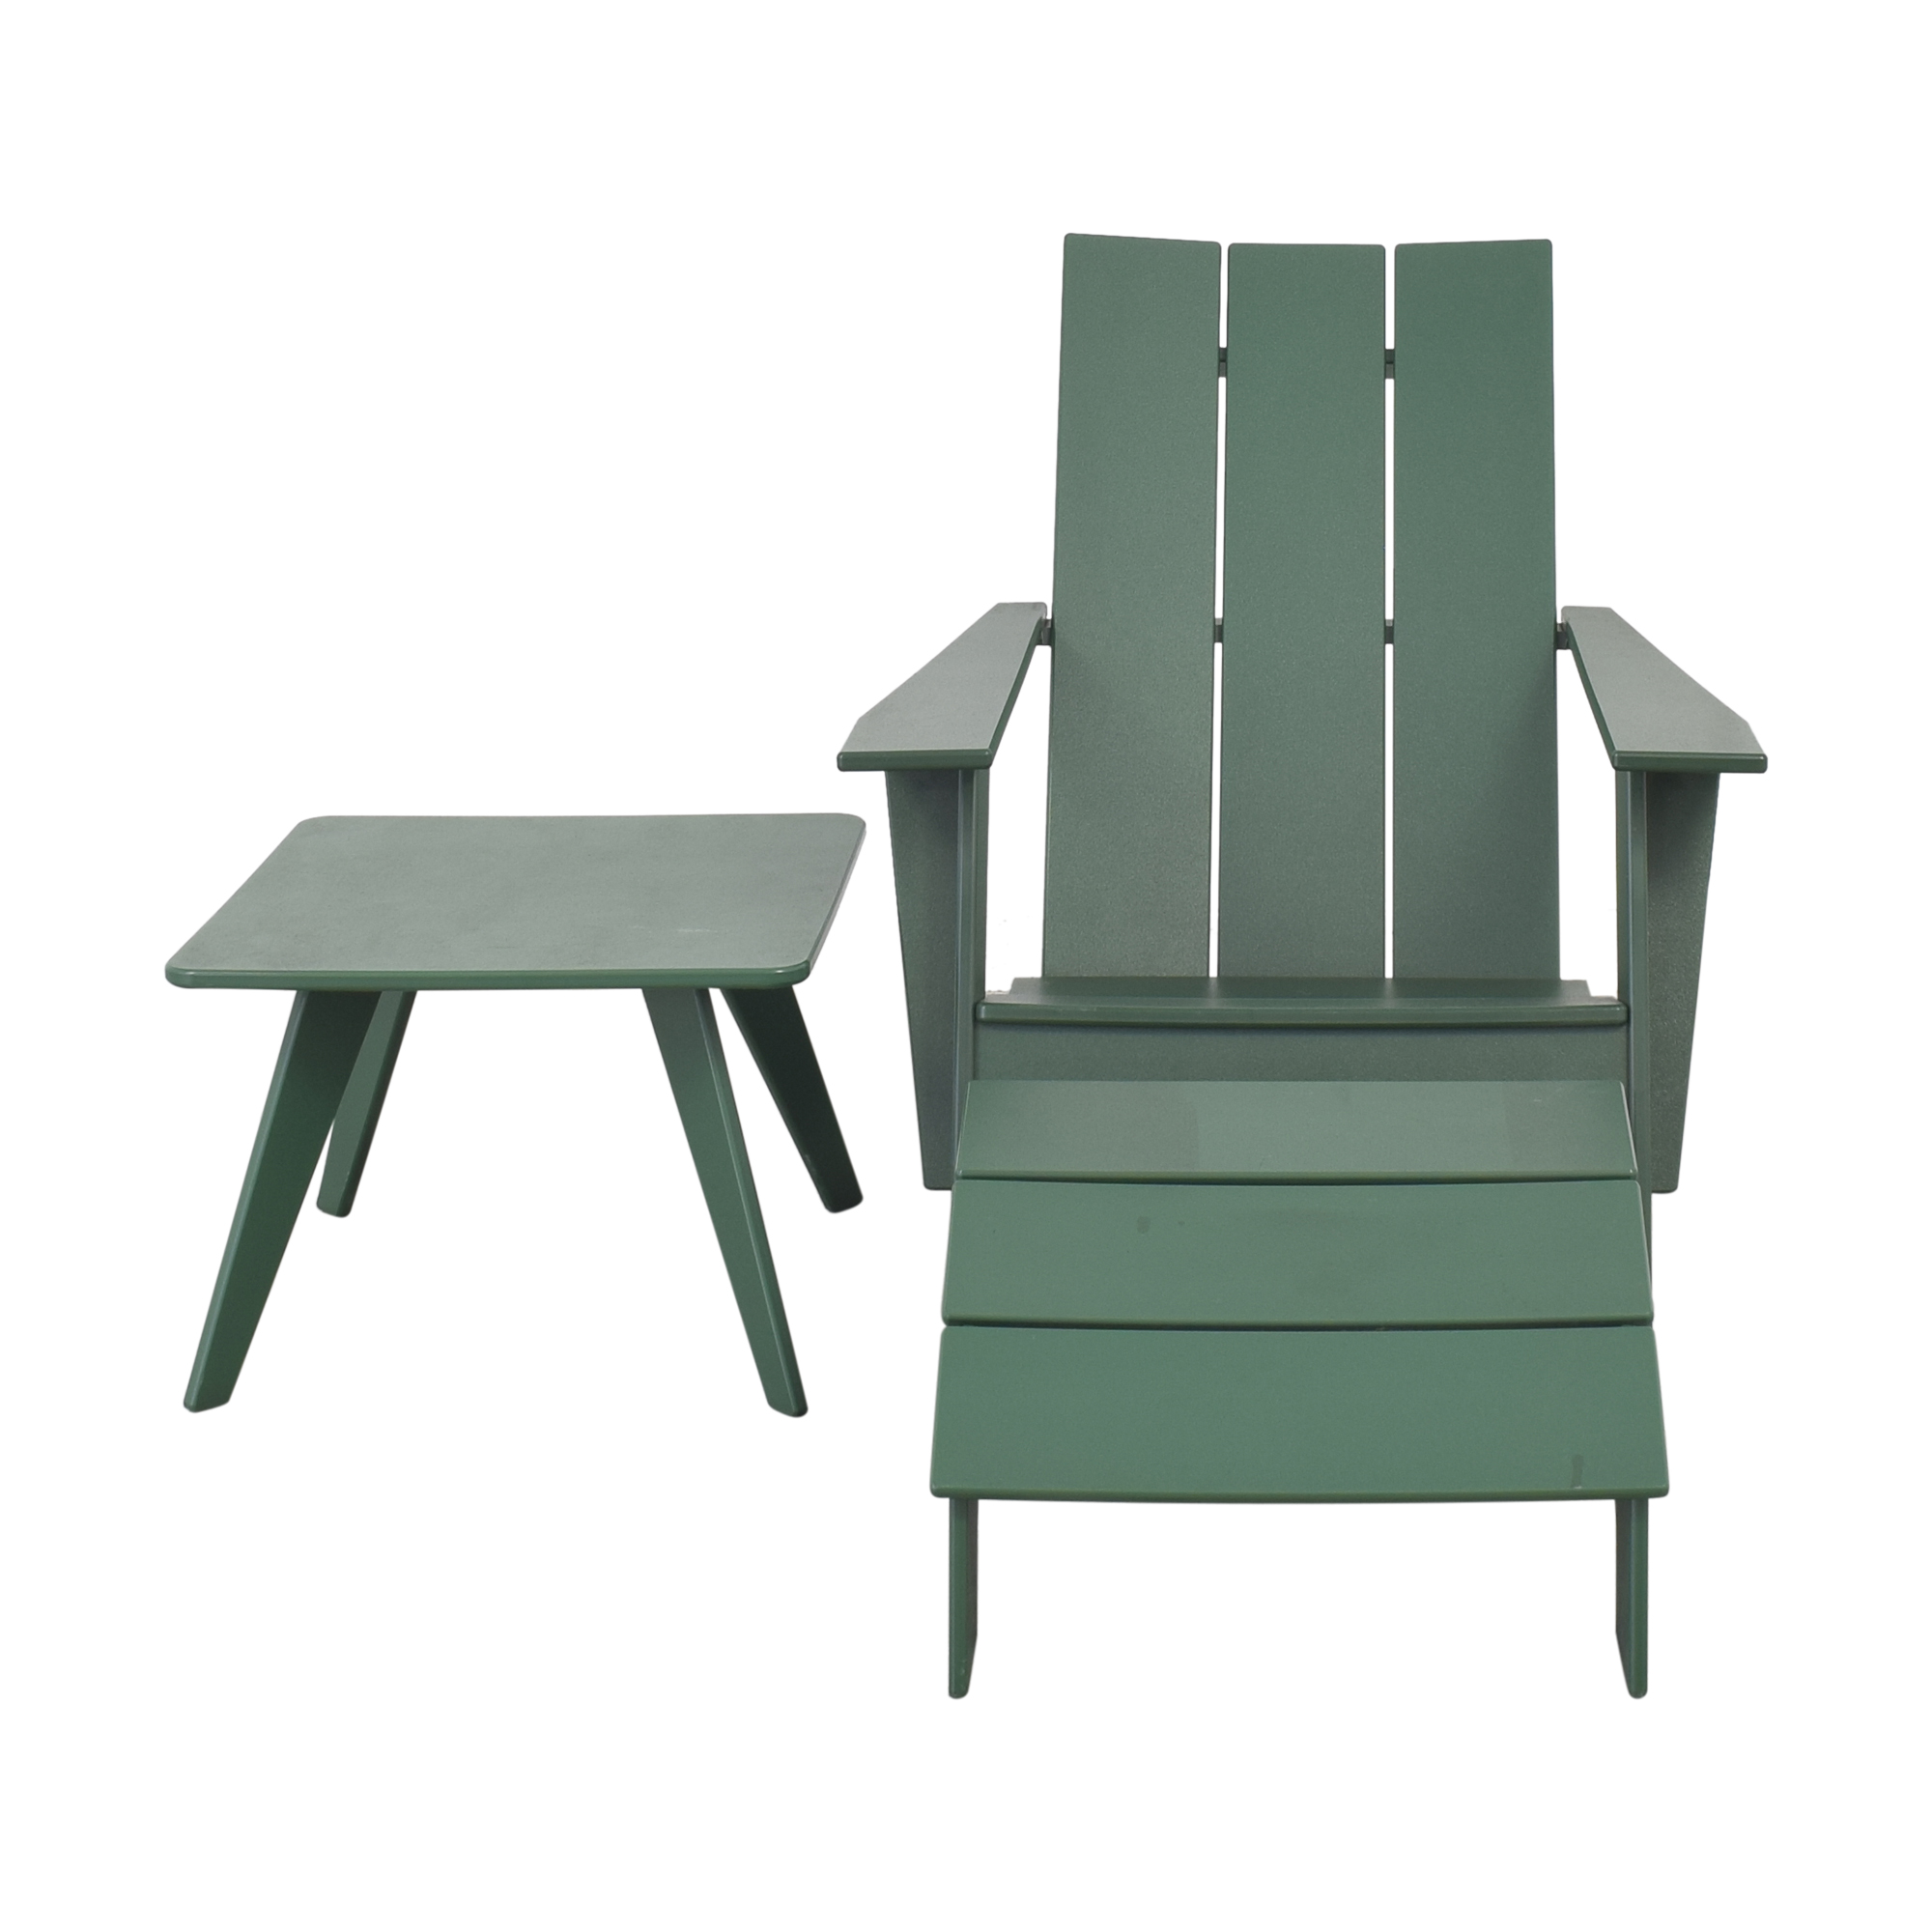 Loll Designs Loll Designs Tall Adirondack Chair with Ottoman and Side Table price